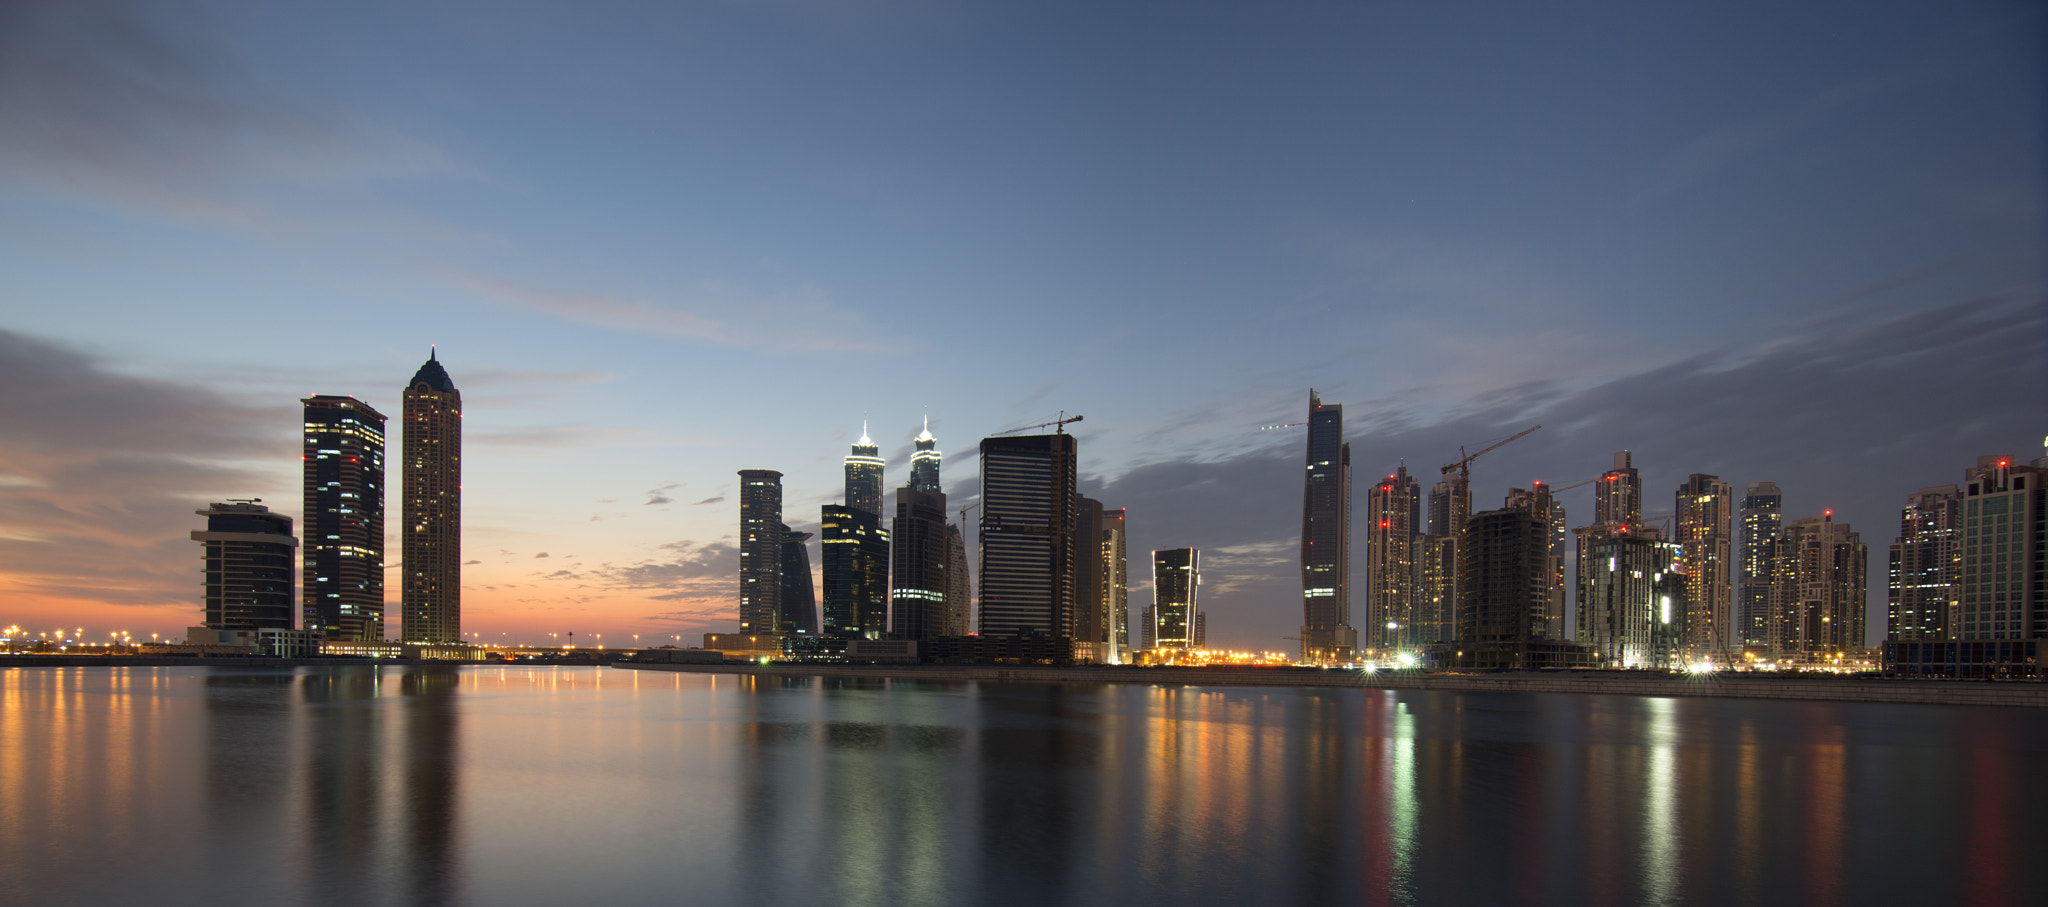 Photograph Sunset View Cityscape by WALID AHMAD on 500px